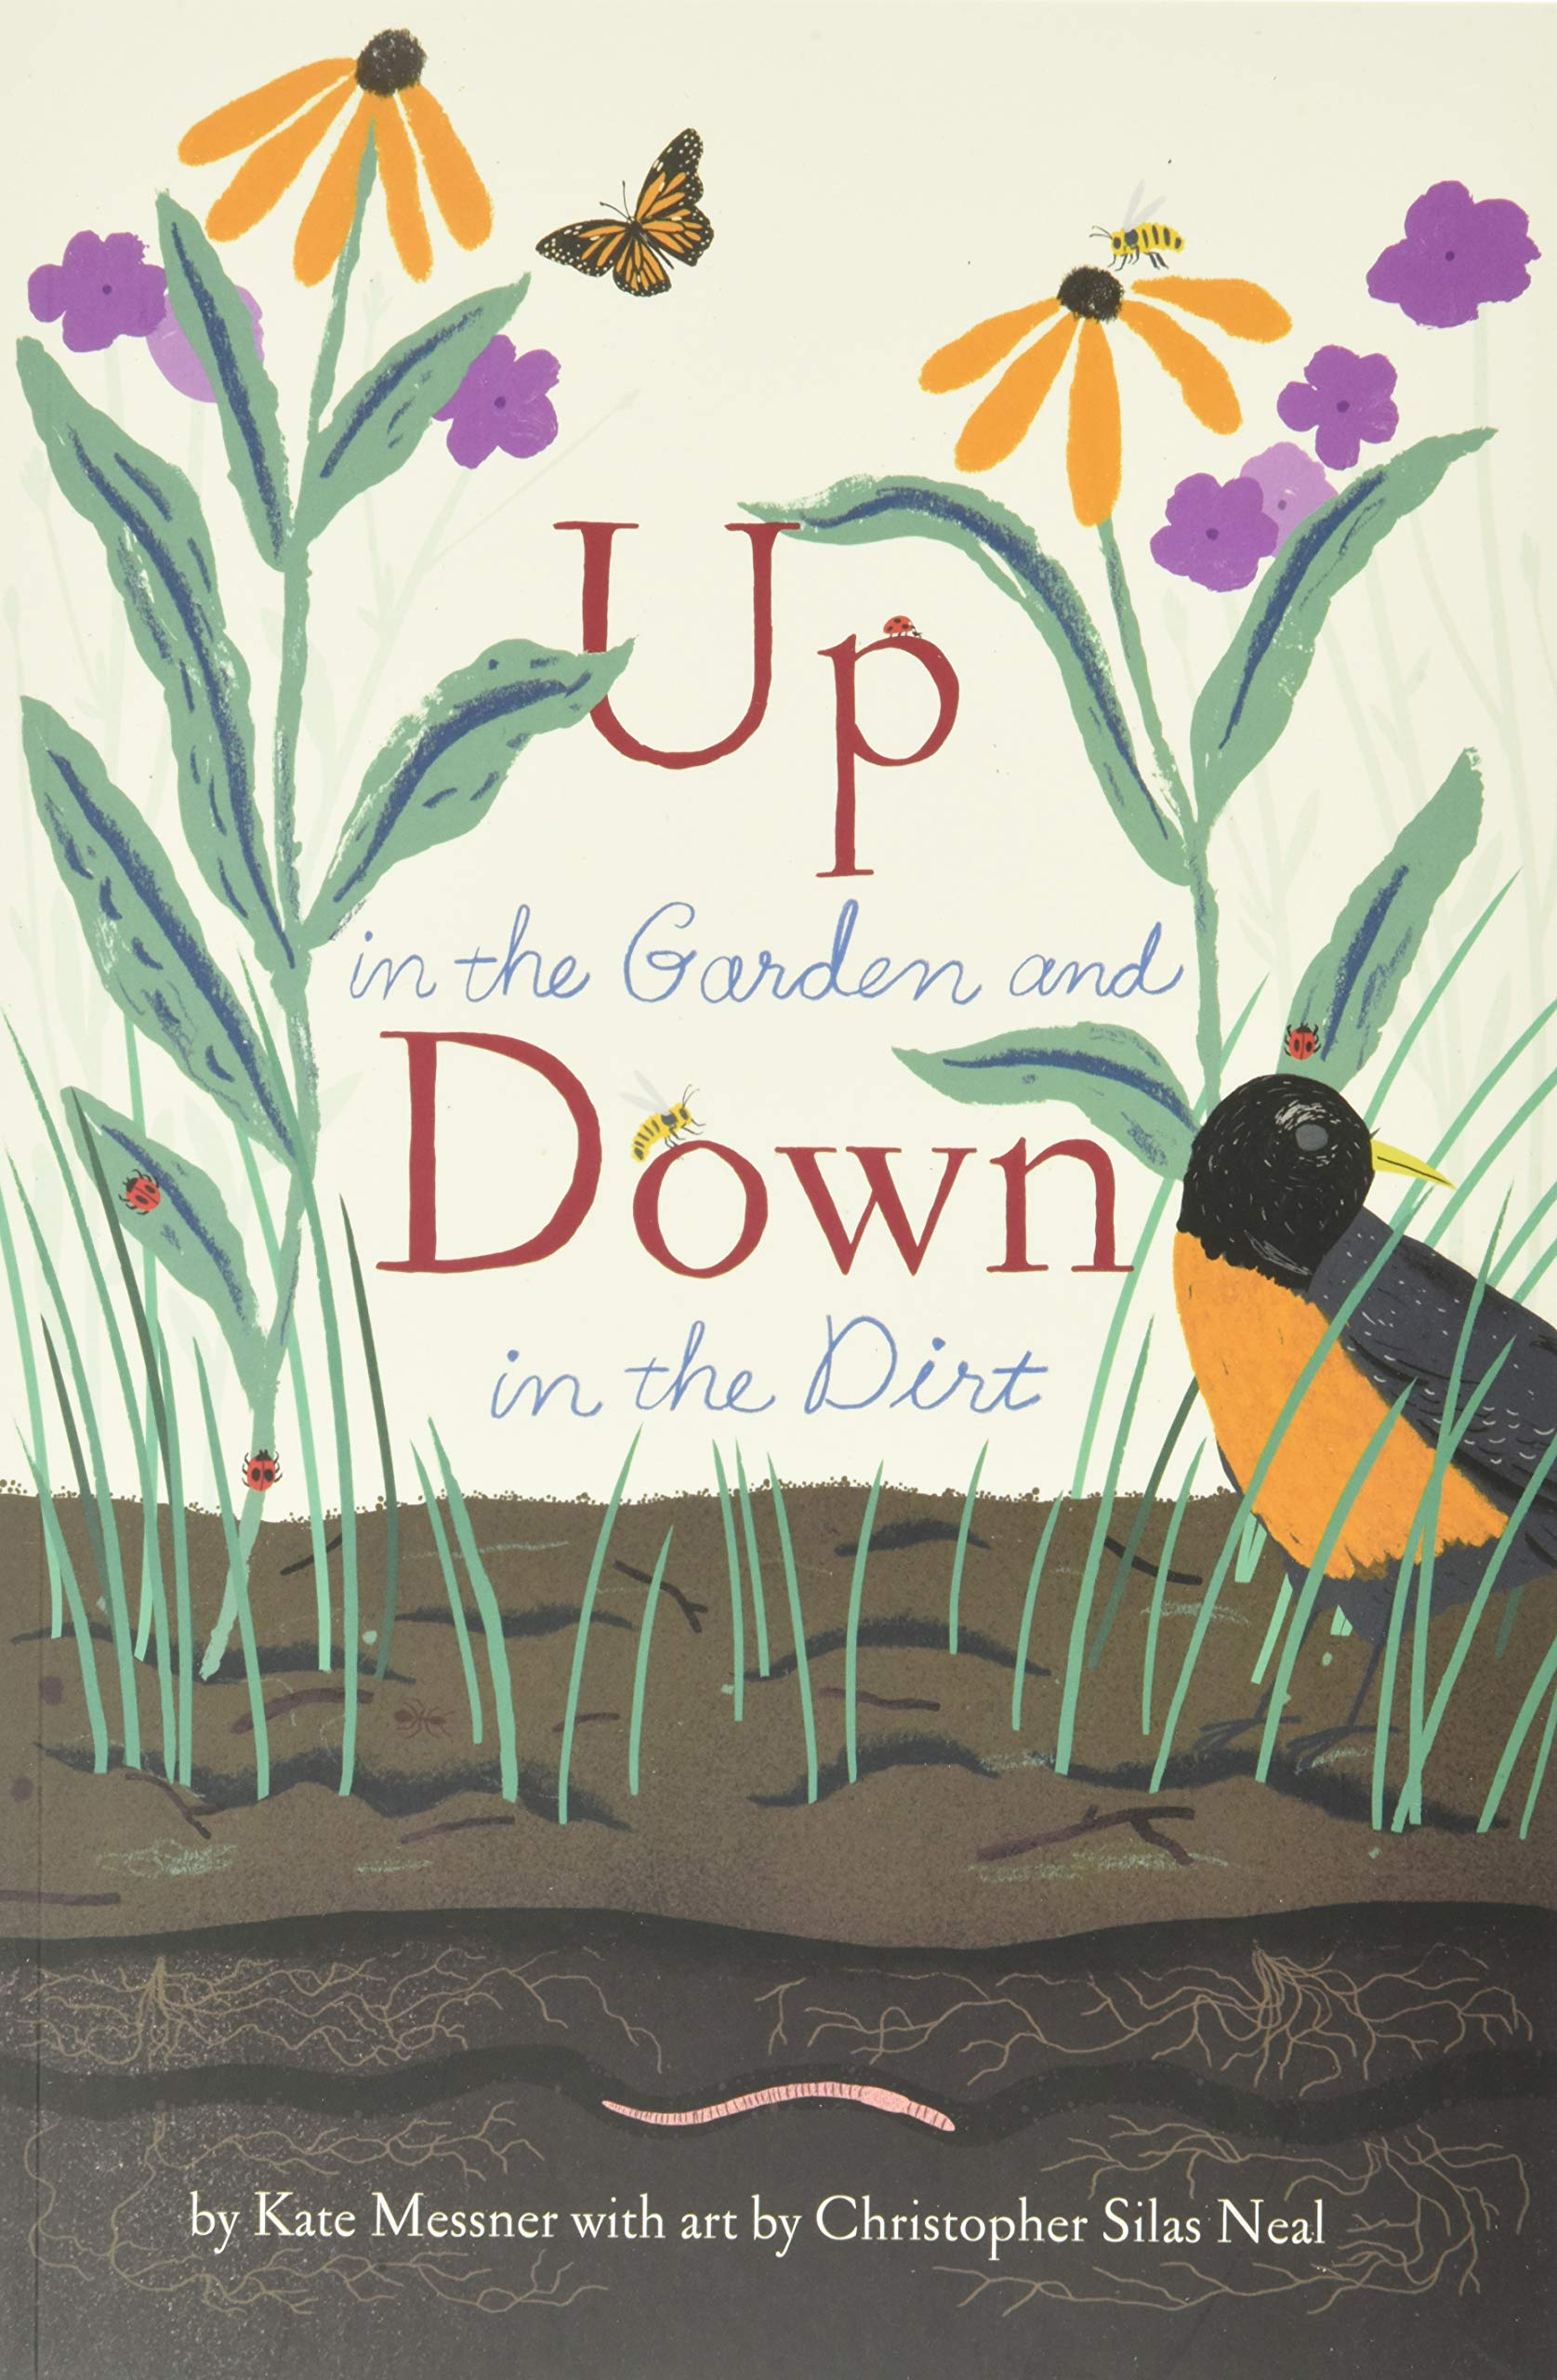 Up in the Garden and Down in the Dirt: (Nature Book for Kids, Gardening and  Vegetable Planting, Outdoor Nature Book): Messner, Kate, Neal, Christopher  Silas: 9781452161365: Amazon.com: Books